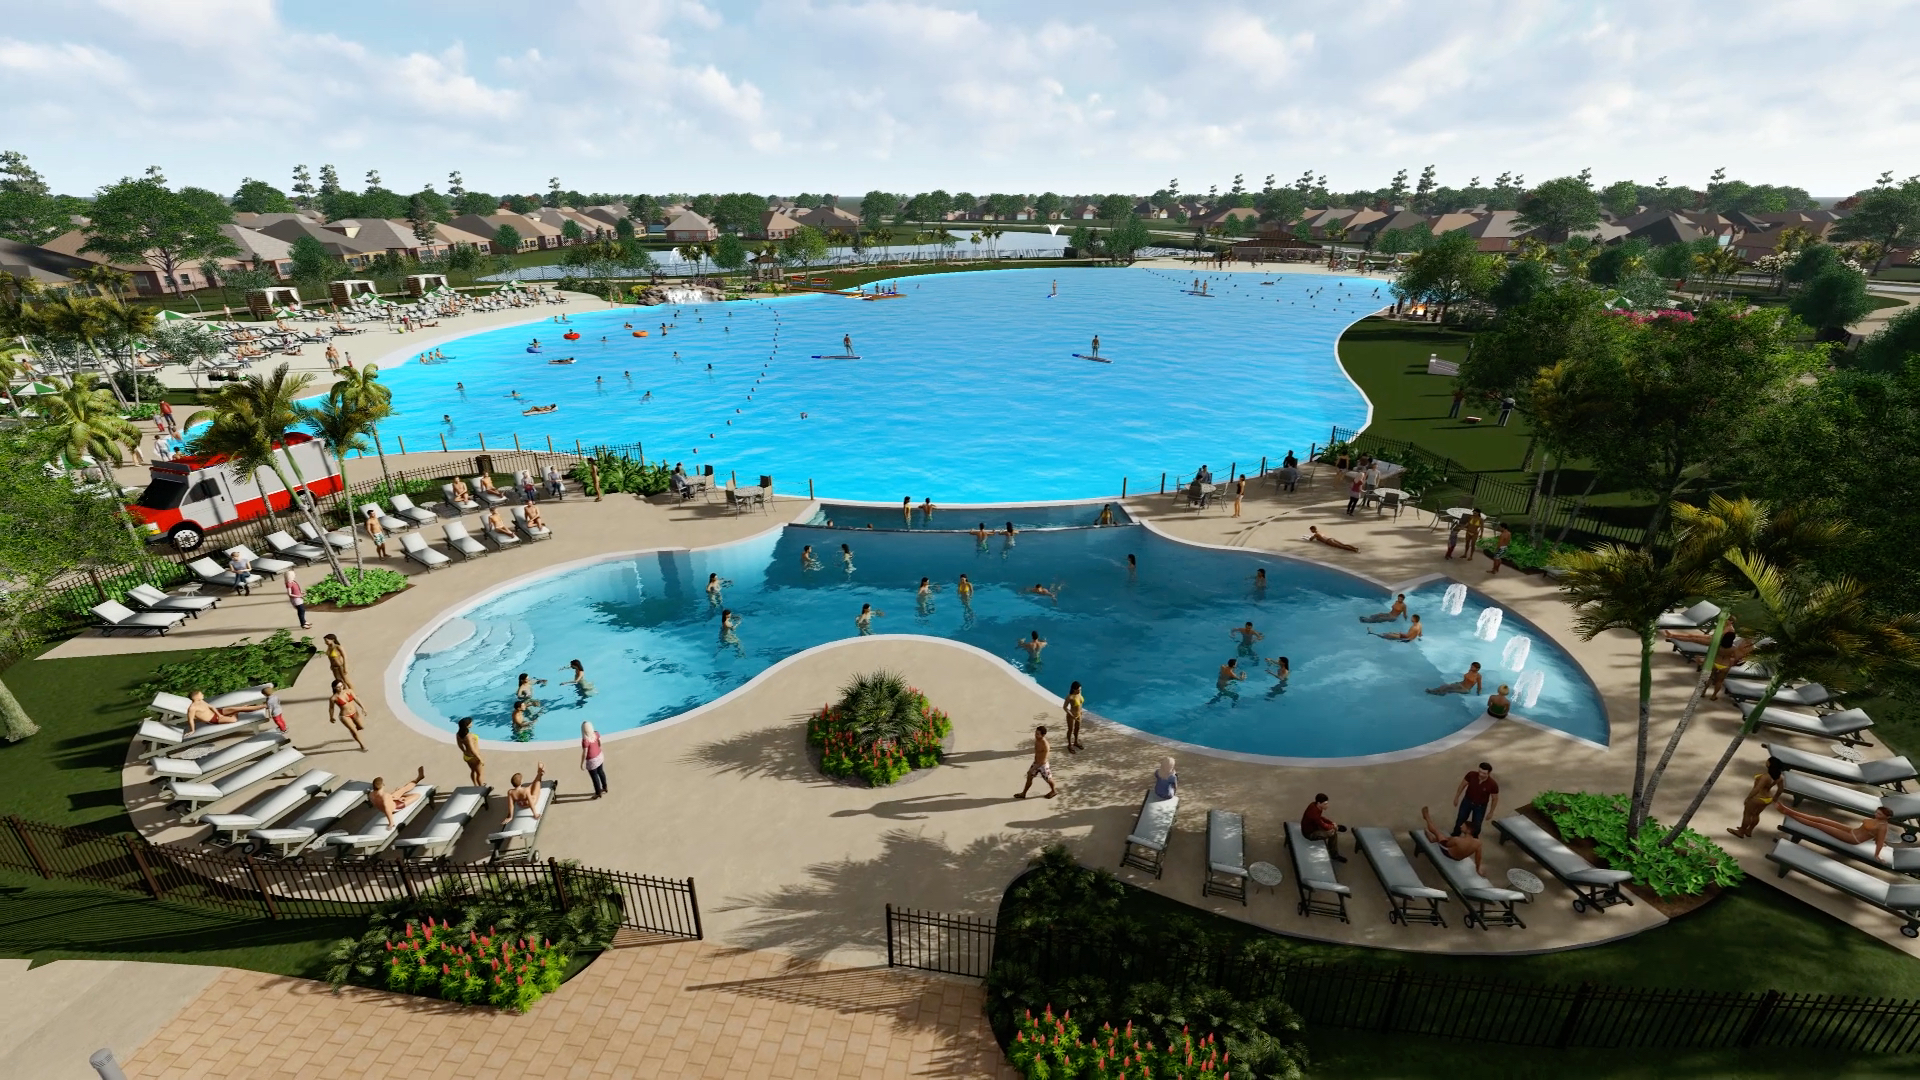 houston area to get another epic pool with the first crystal